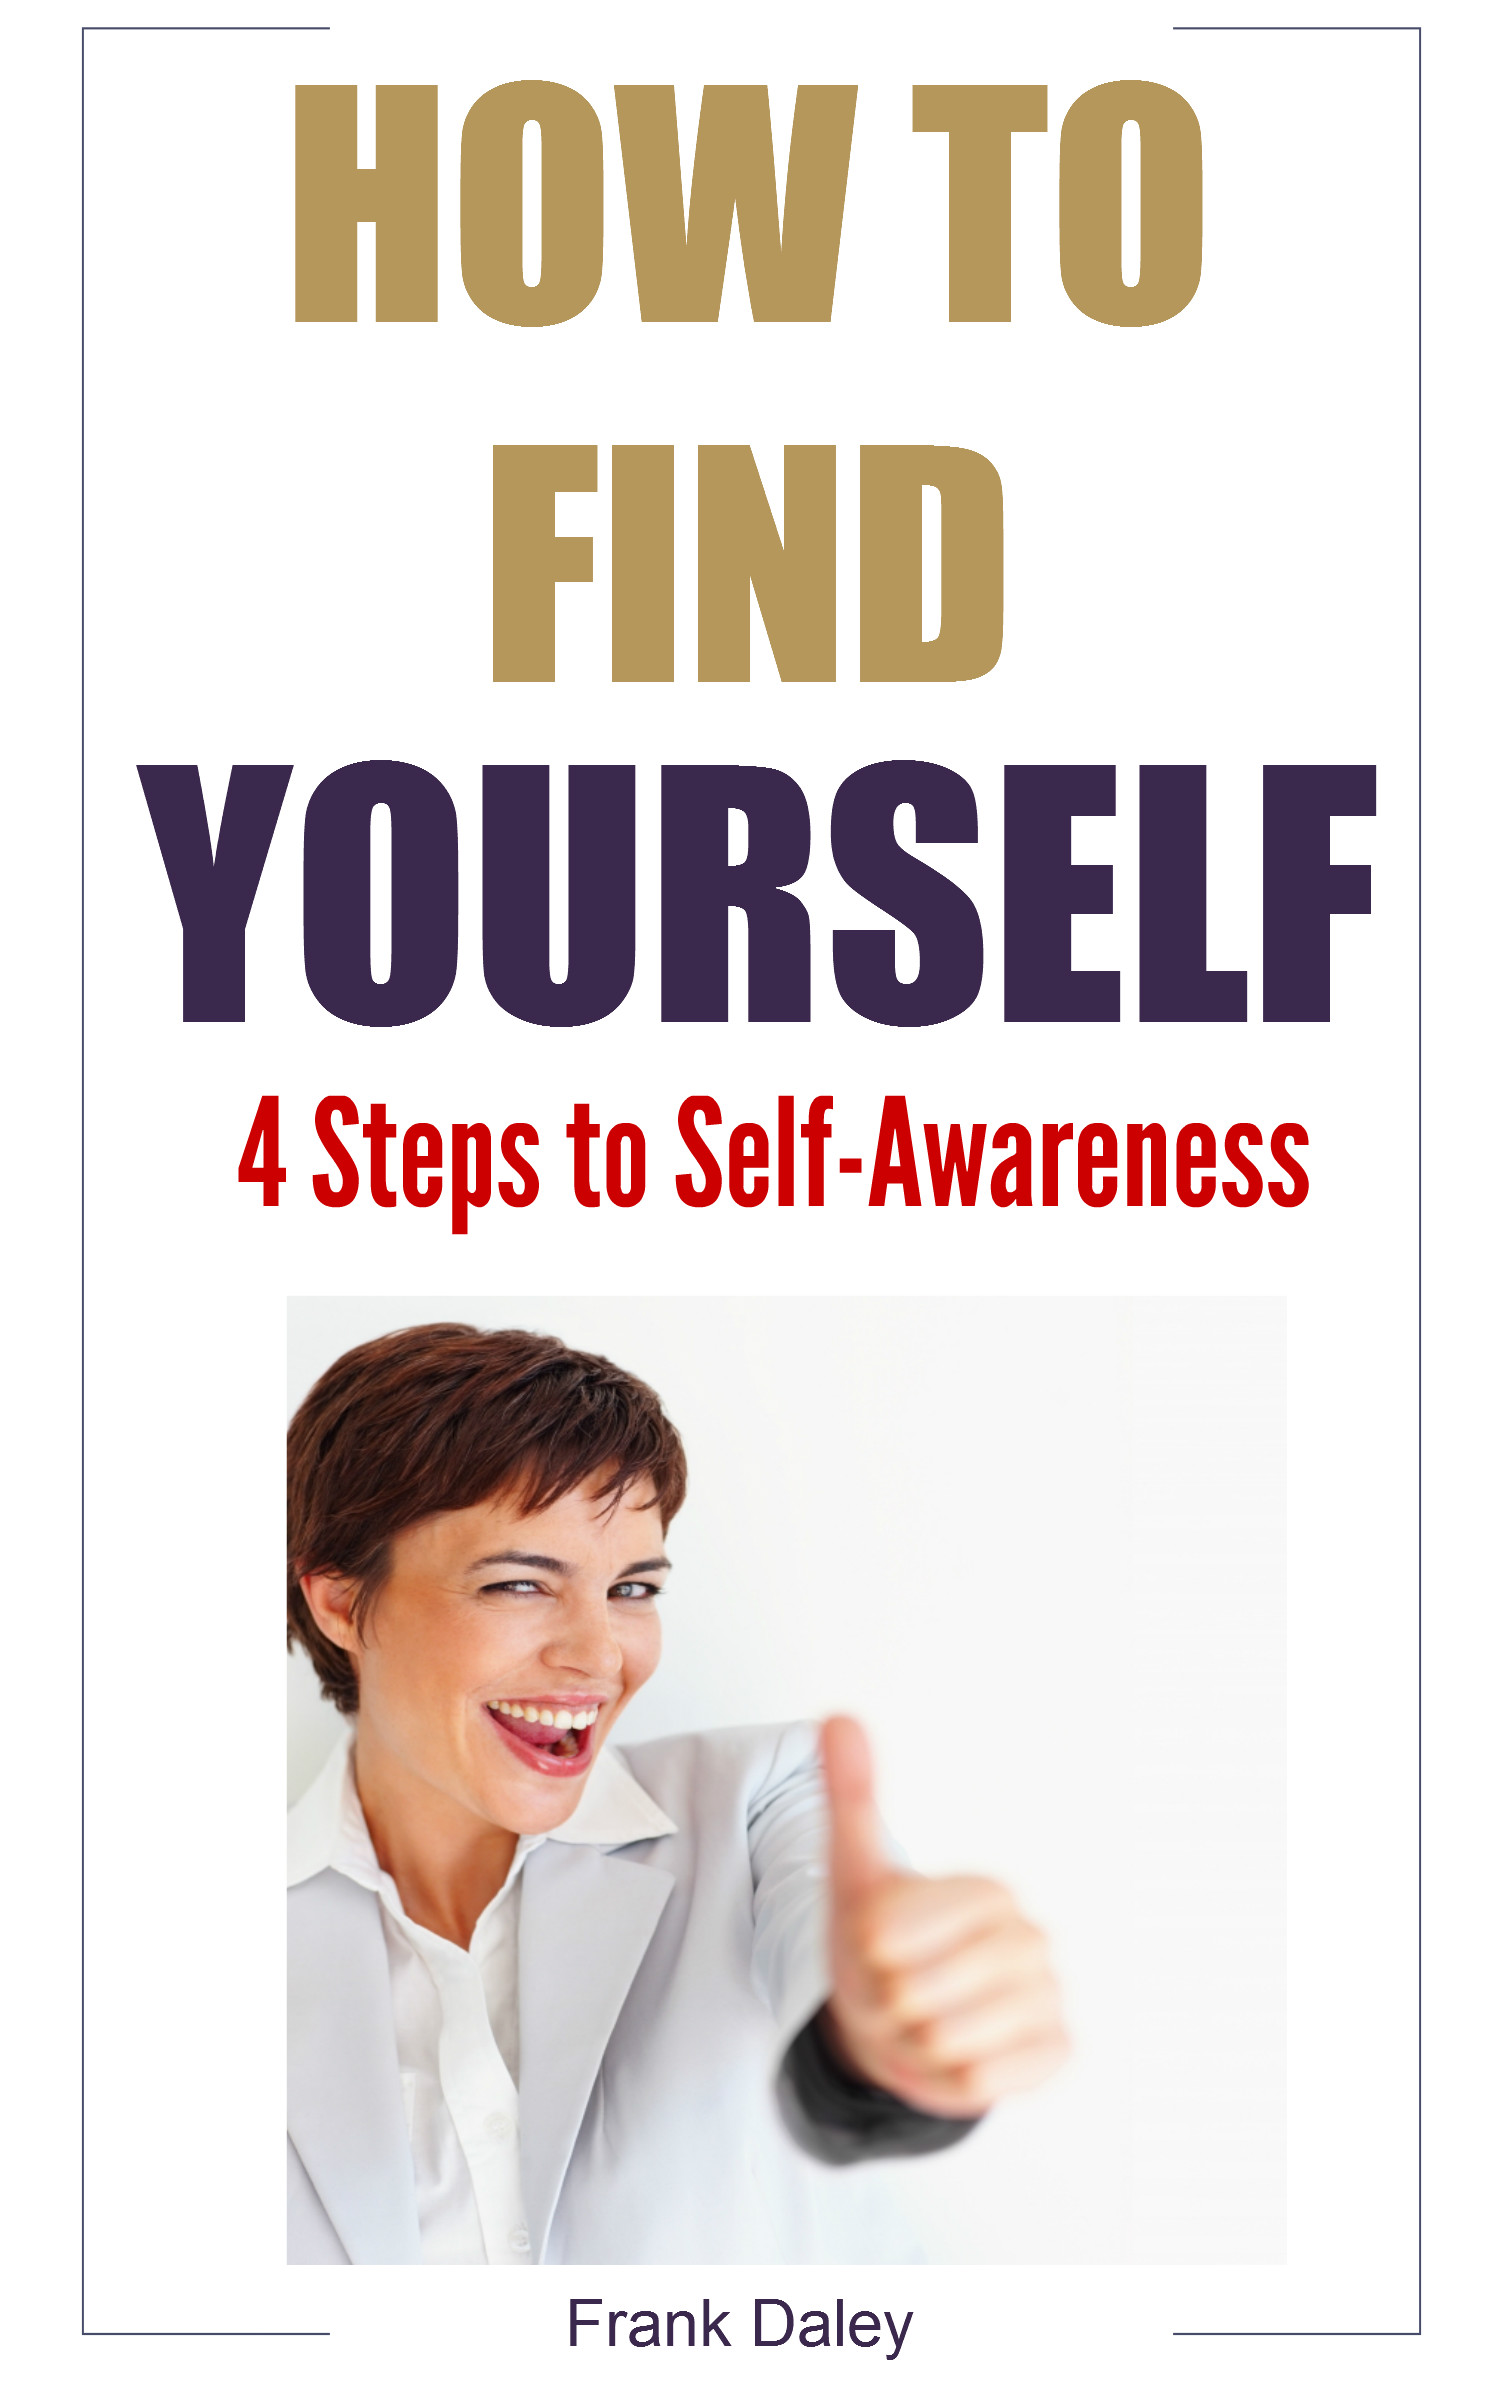 How to find yourself: 4 steps to self-awareness